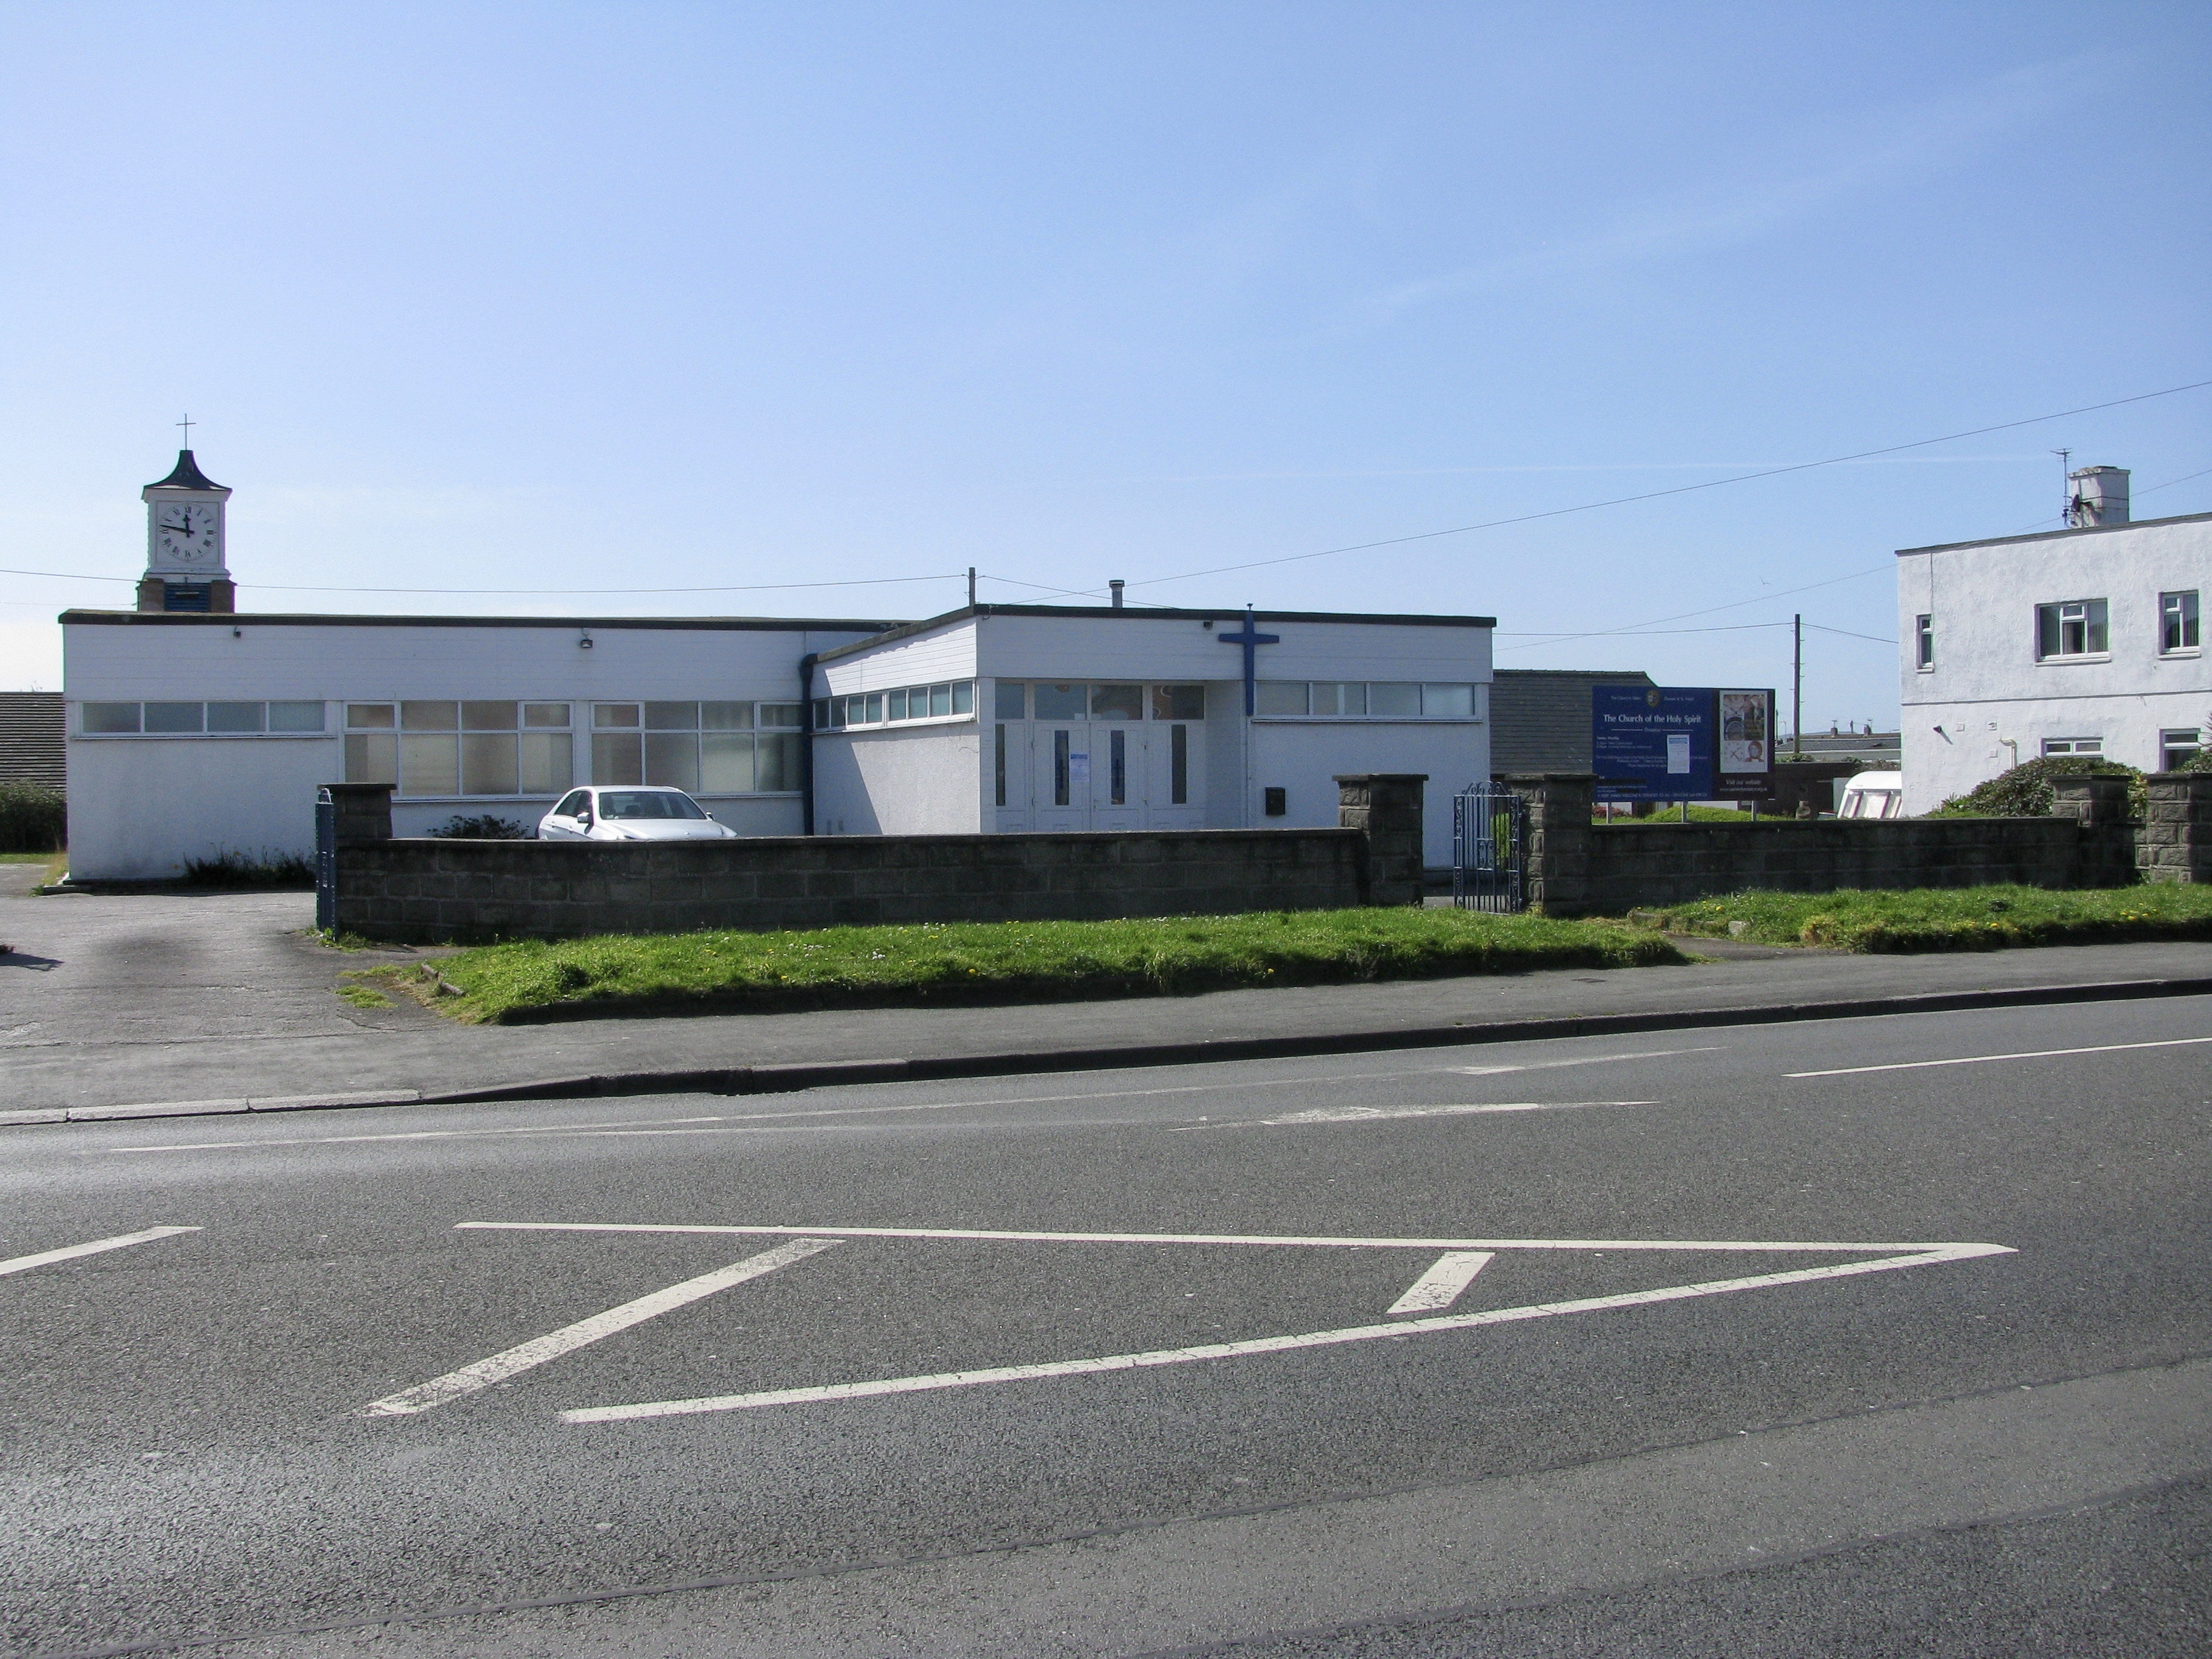 Photo of Church of the Holy Spirit, Taken on a sunny day. Modern White, flat roof building with car parking.